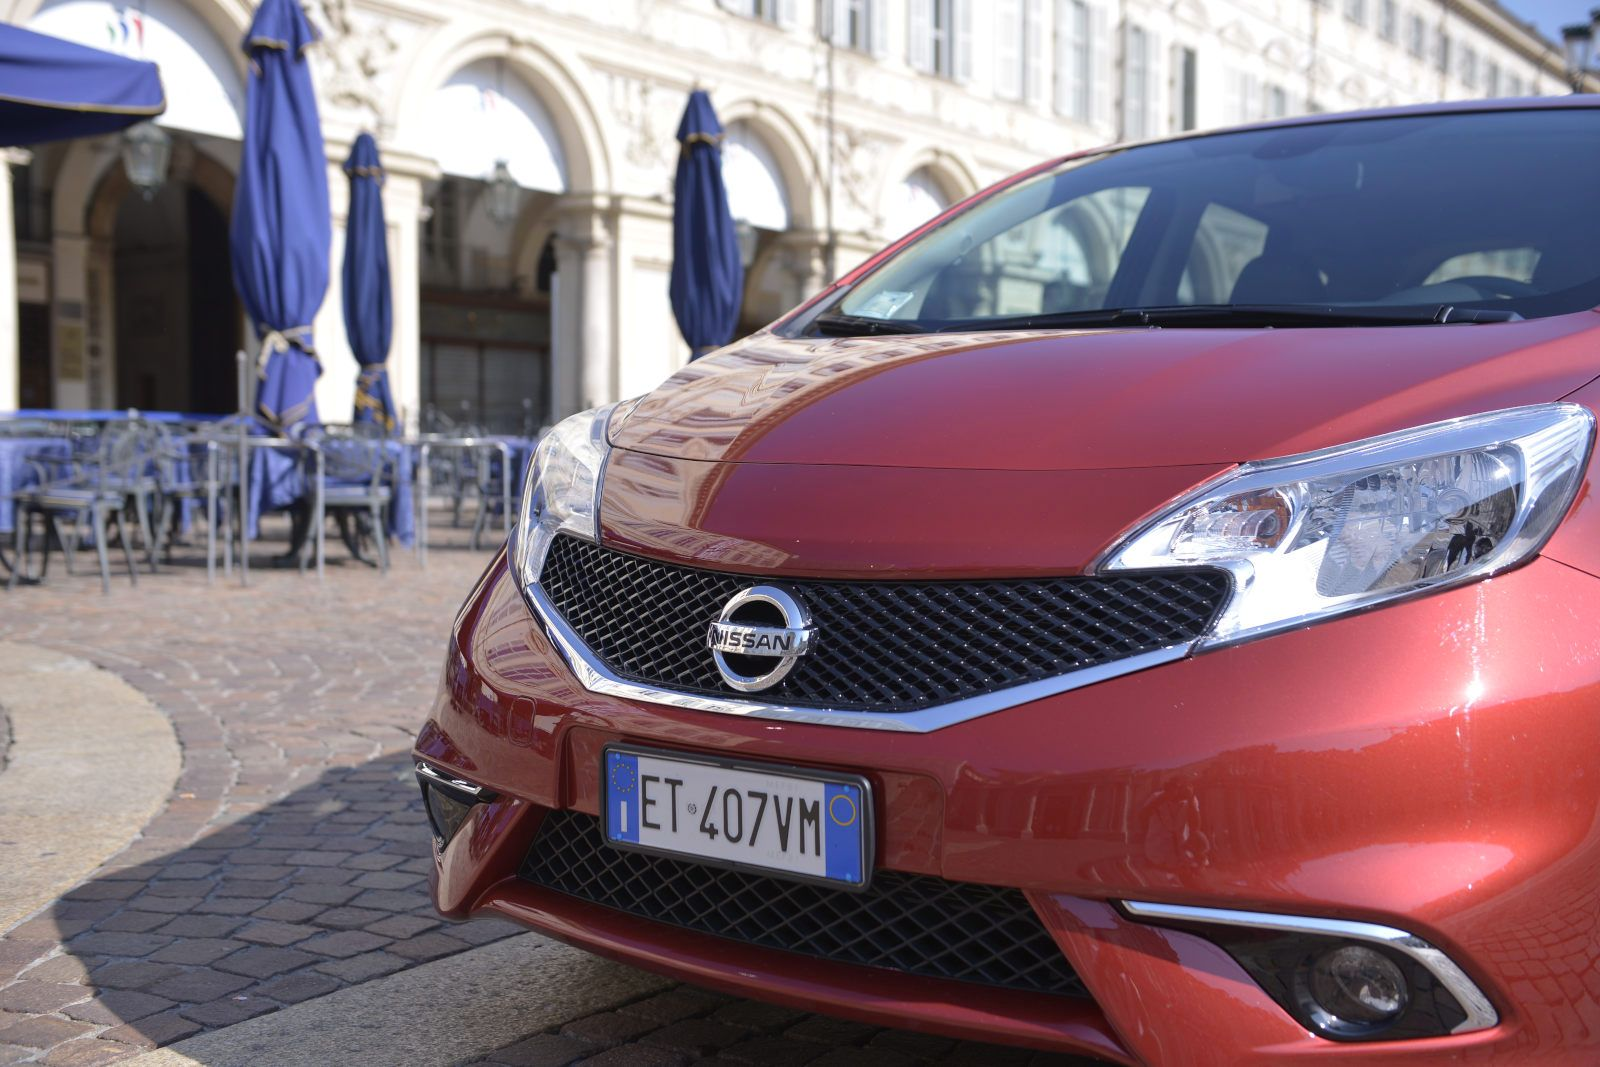 nissan-note-006_01